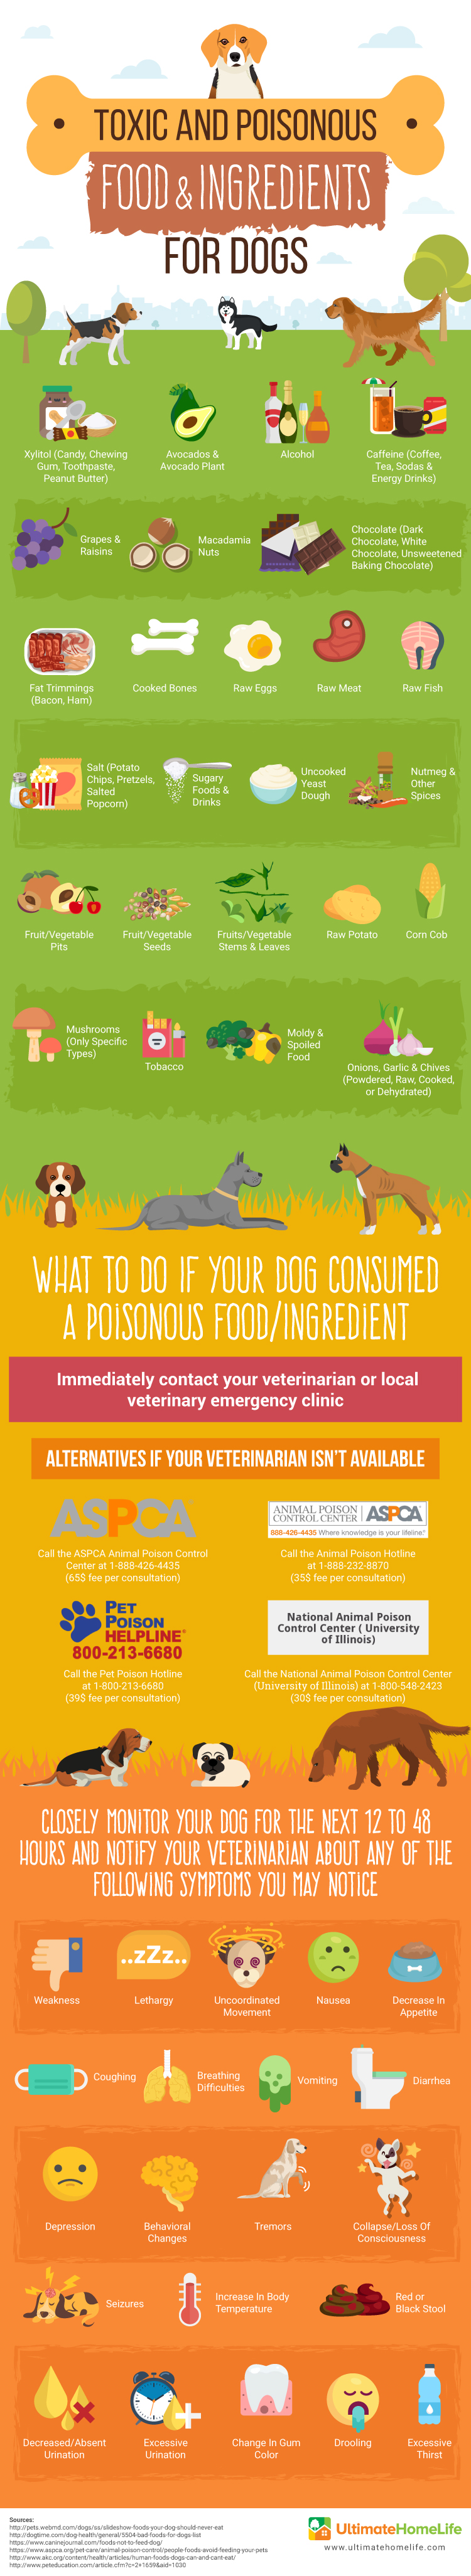 Toxic And Poisonous Food & Ingredients For Dogs